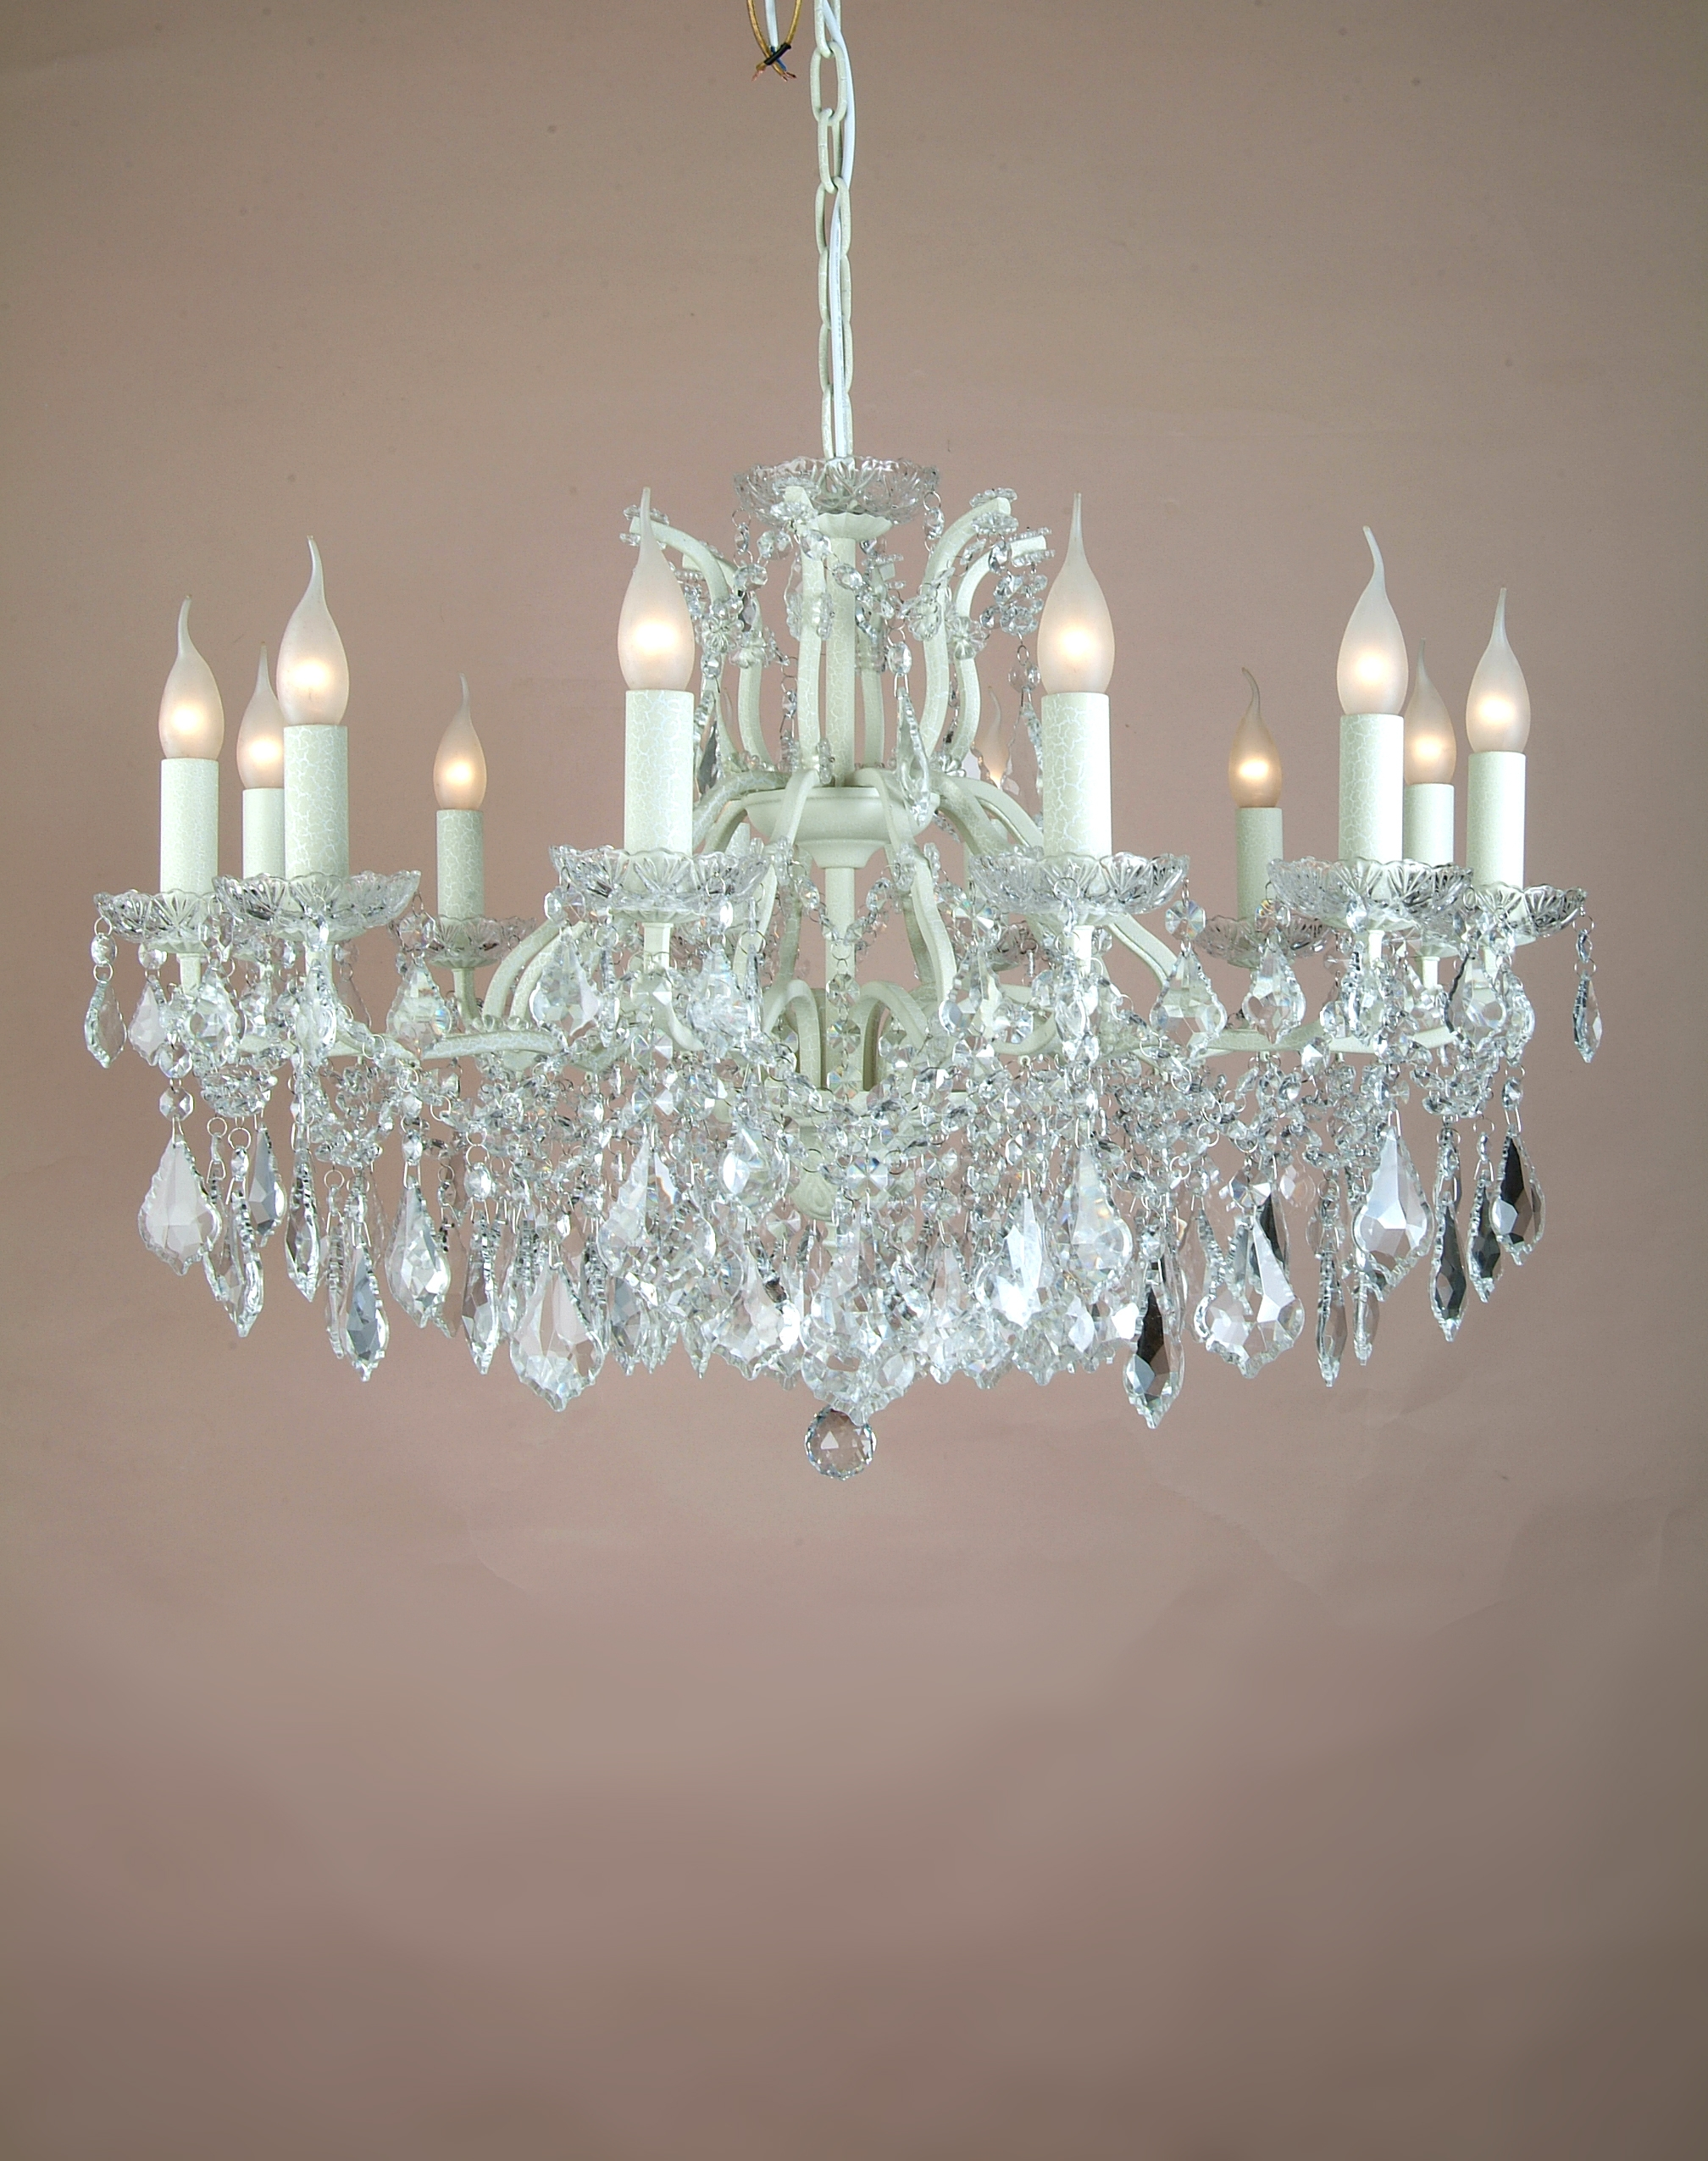 Glass Chandeliers Superb For Your Designing Home Inspiration With Regarding Glass Chandeliers (Image 7 of 15)